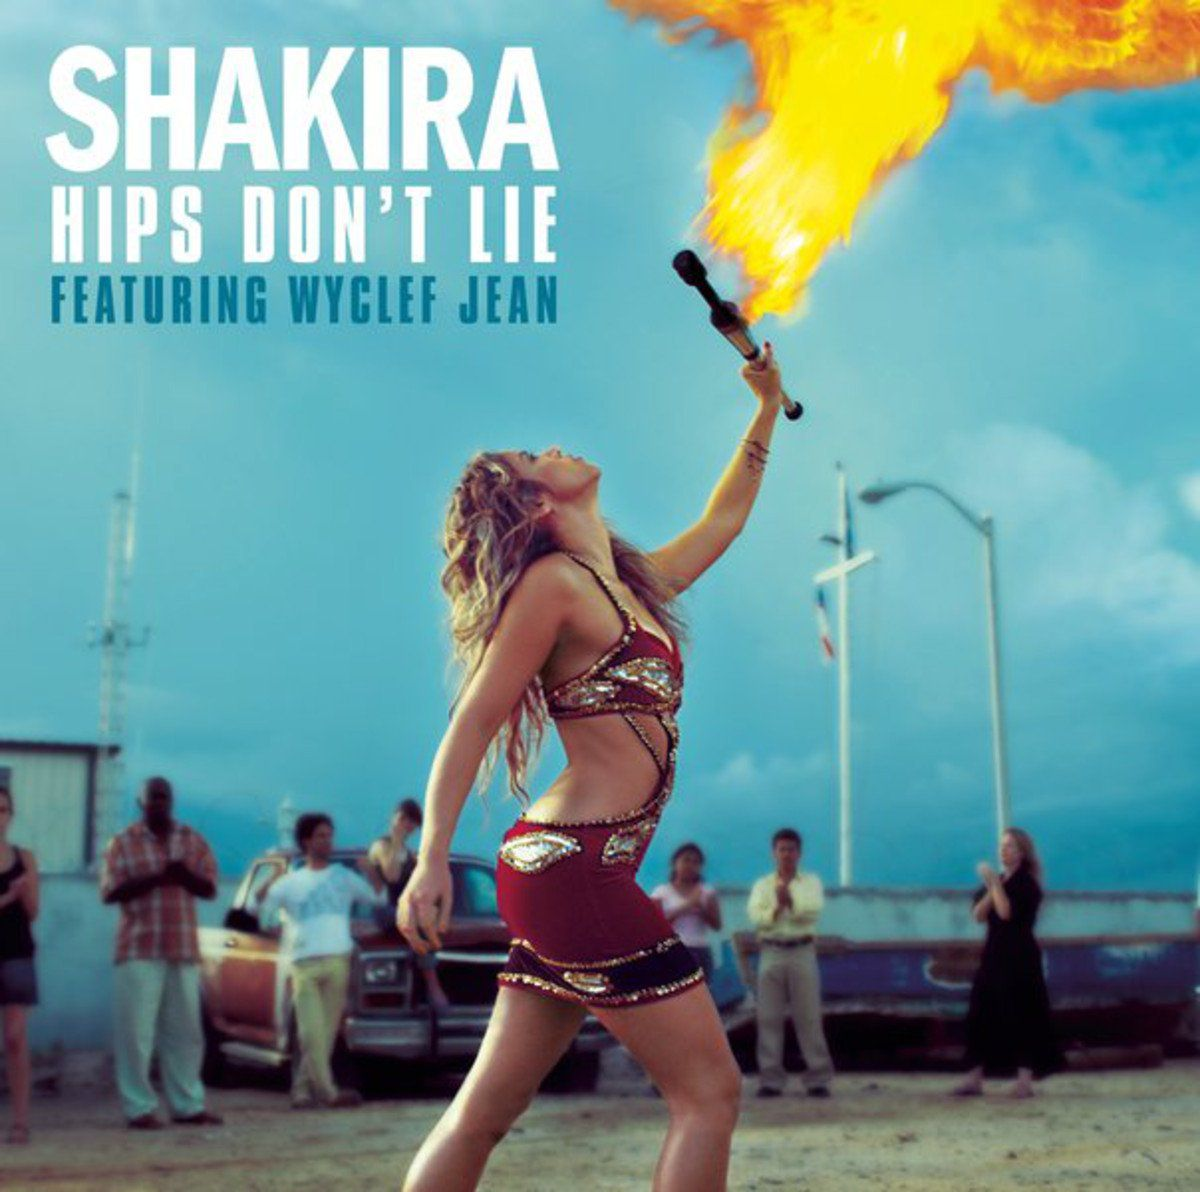 Shakira featuring Wyclef Jean - Hips Don't Lie